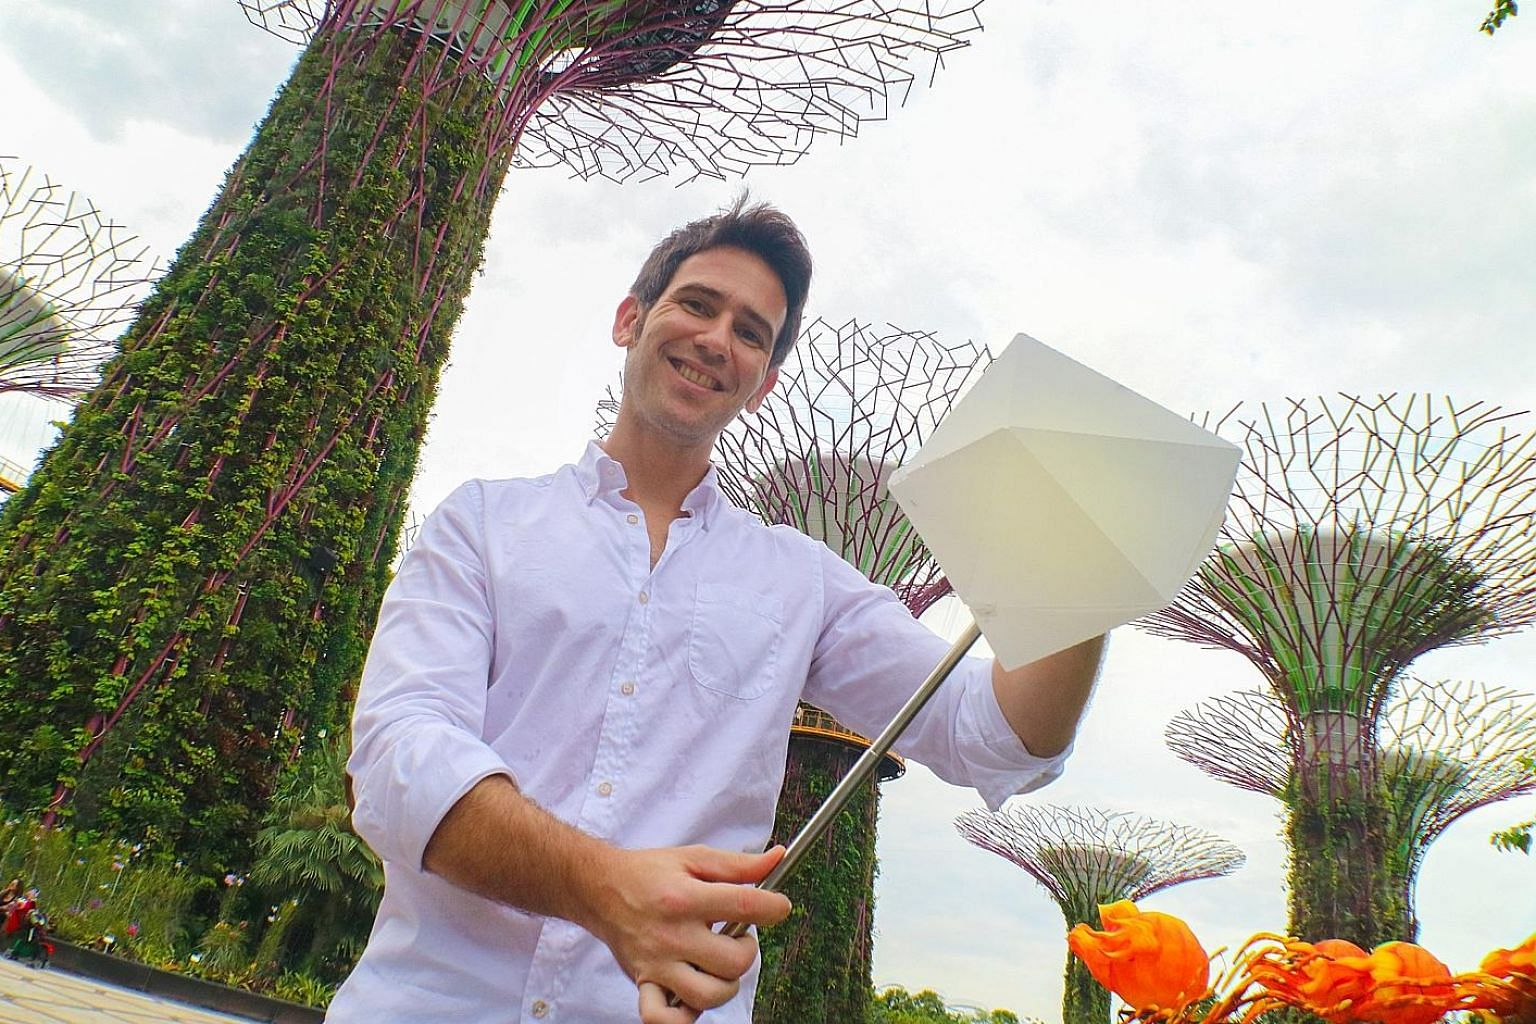 Mr Carlos Banon, with the lantern casing for smartphones at Gardens by the Bay.